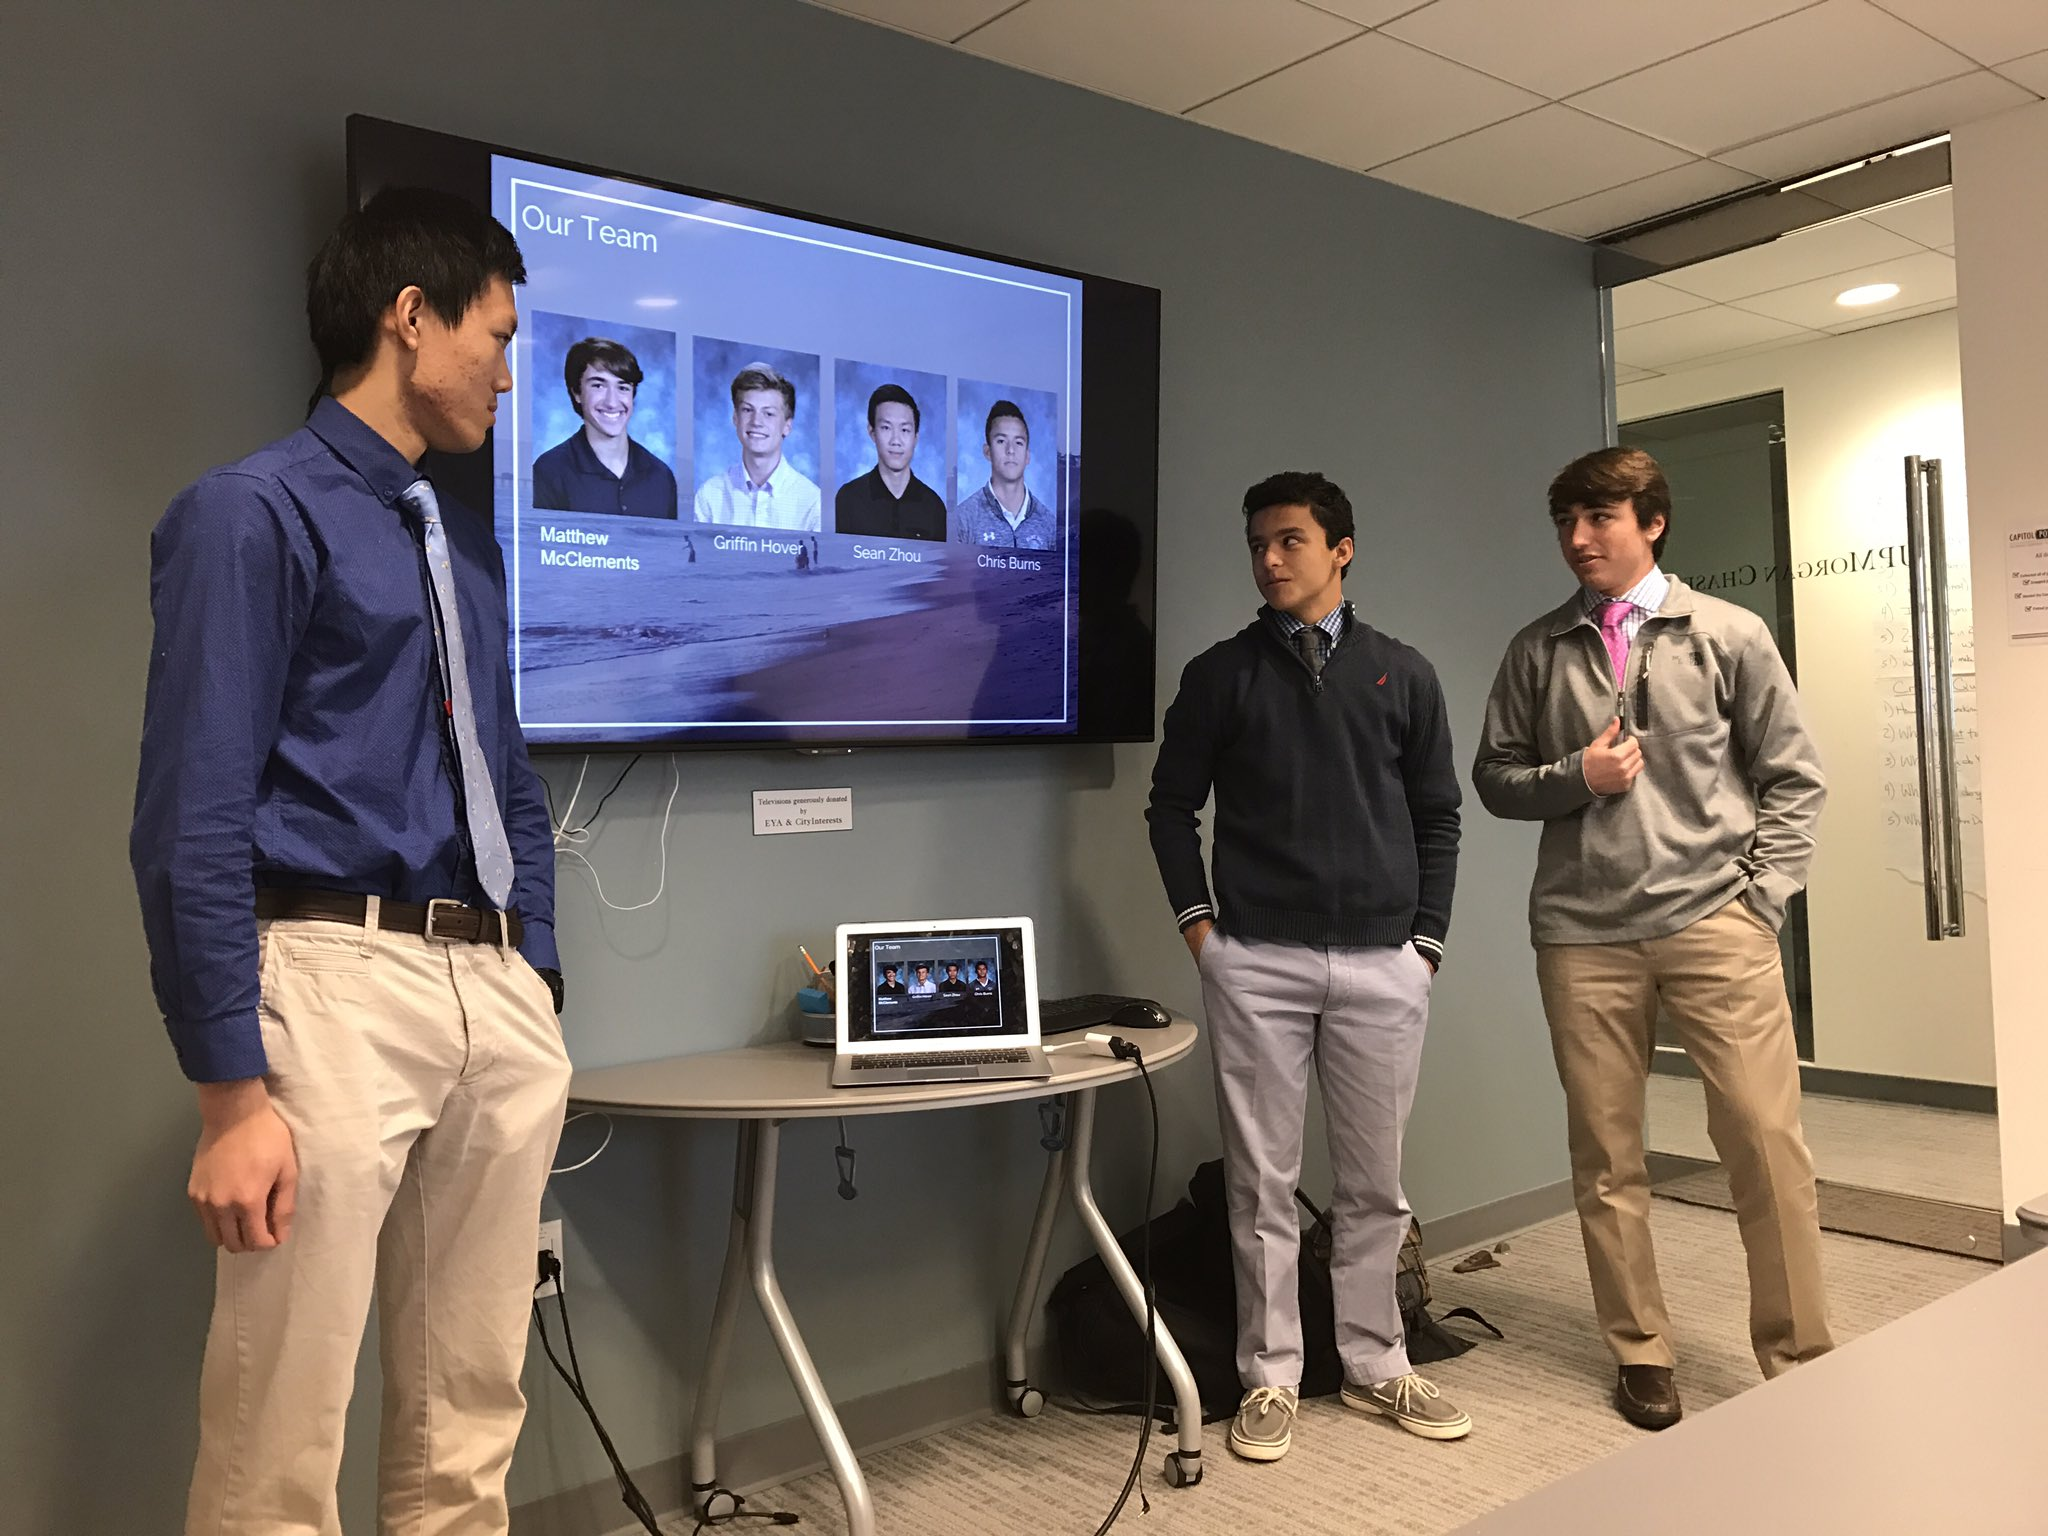 Surfit team pitching surf wear clothing line from the Start Up class! #myflinthill https://t.co/ly6gZxMlrs